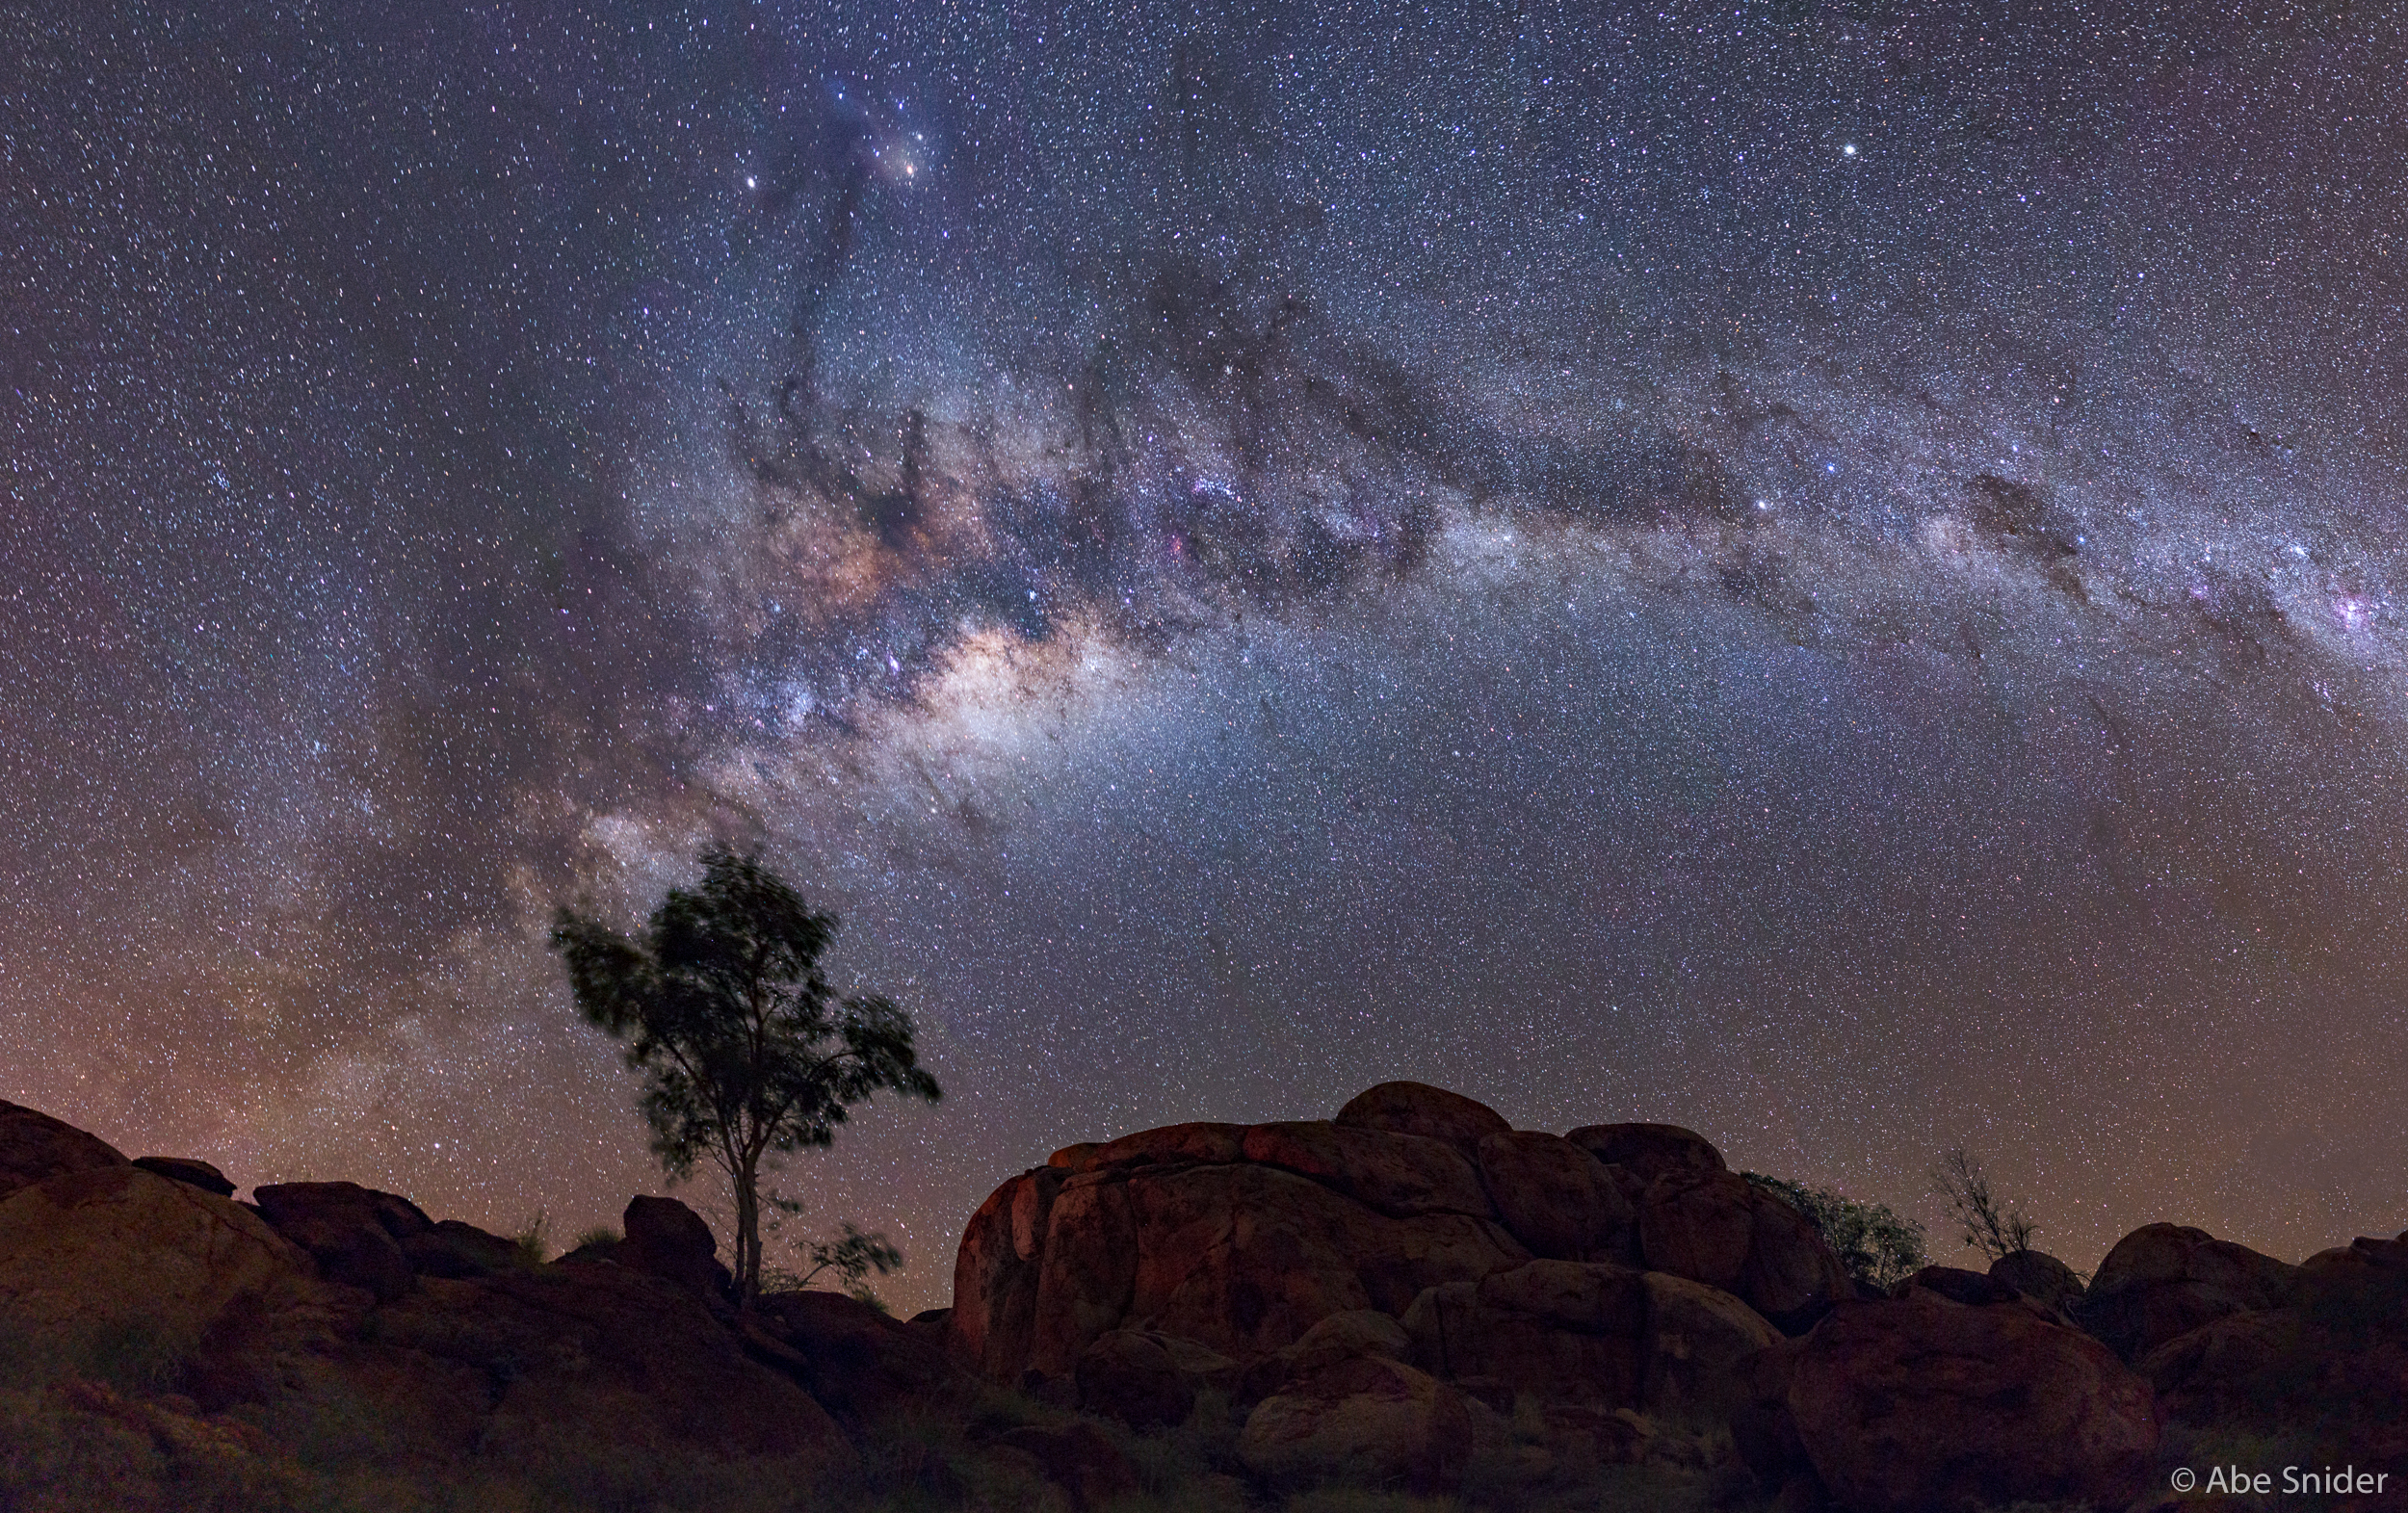 Super clear and dark skies over the Devils Marbles. No light pollution for many many miles in all directions.